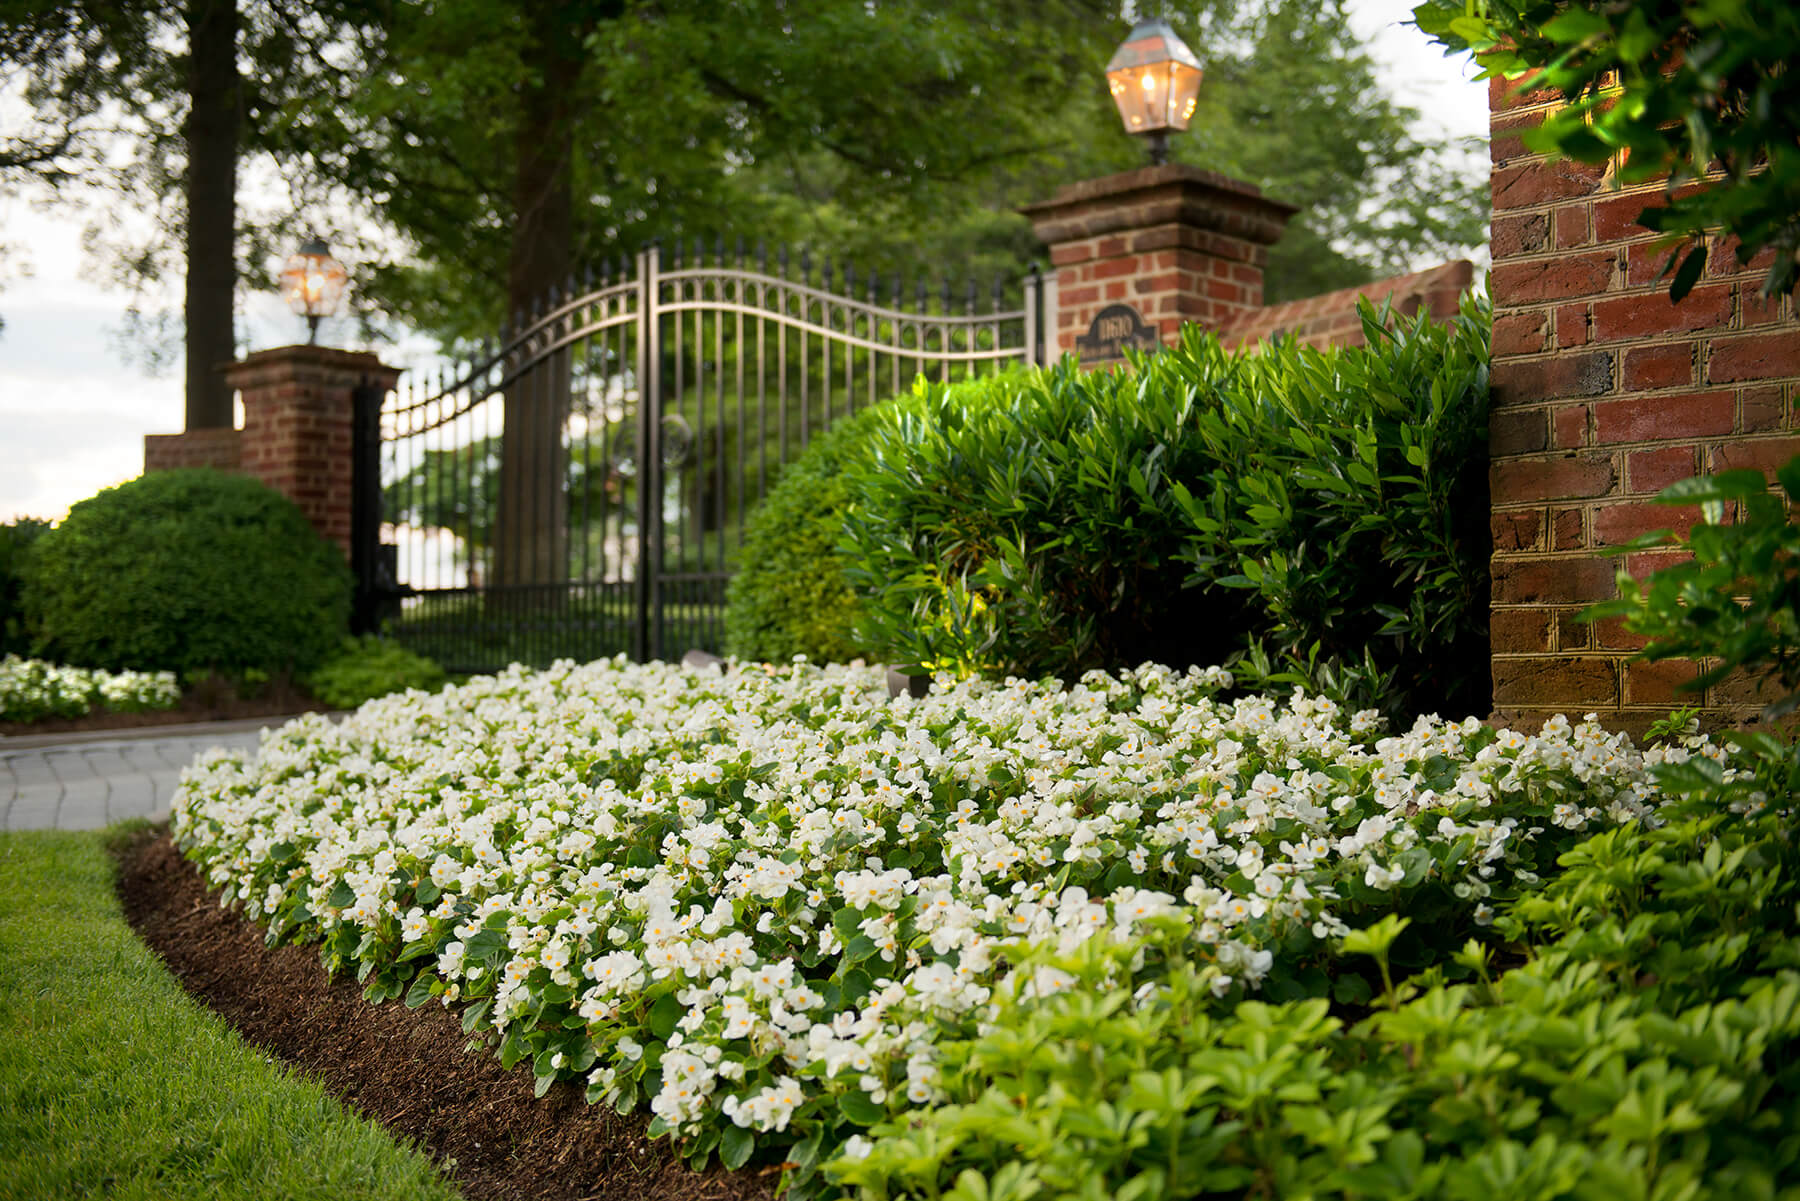 Flower bed filled with white begonias